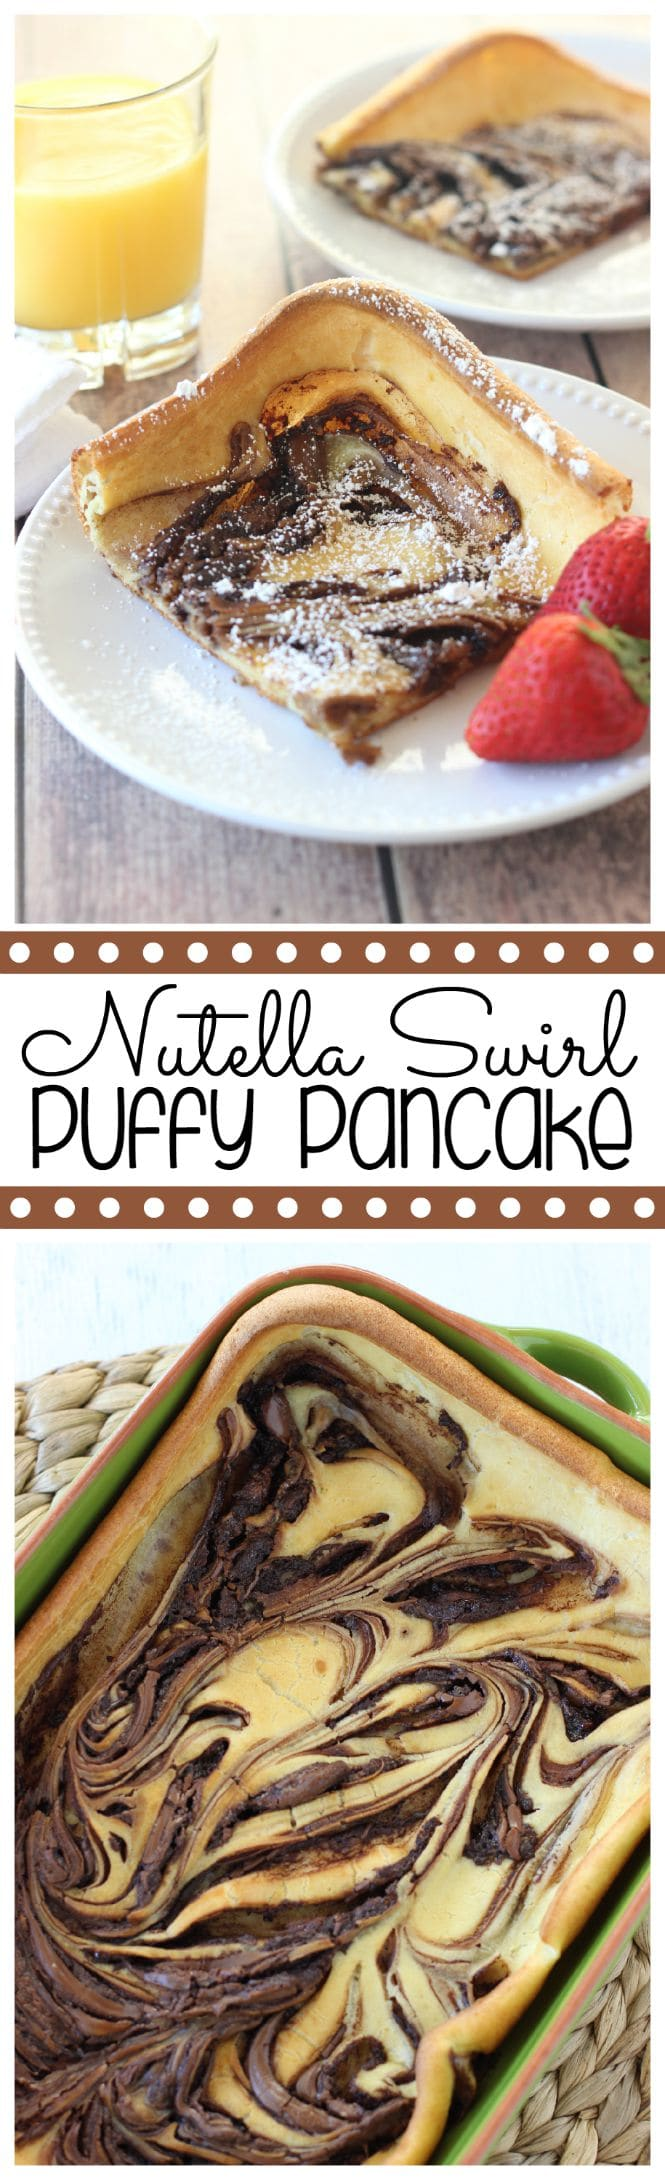 Nutella Swirl Puffy Pancake - An easy to prepare oven-baked pancake filled with swirls of Nutella.